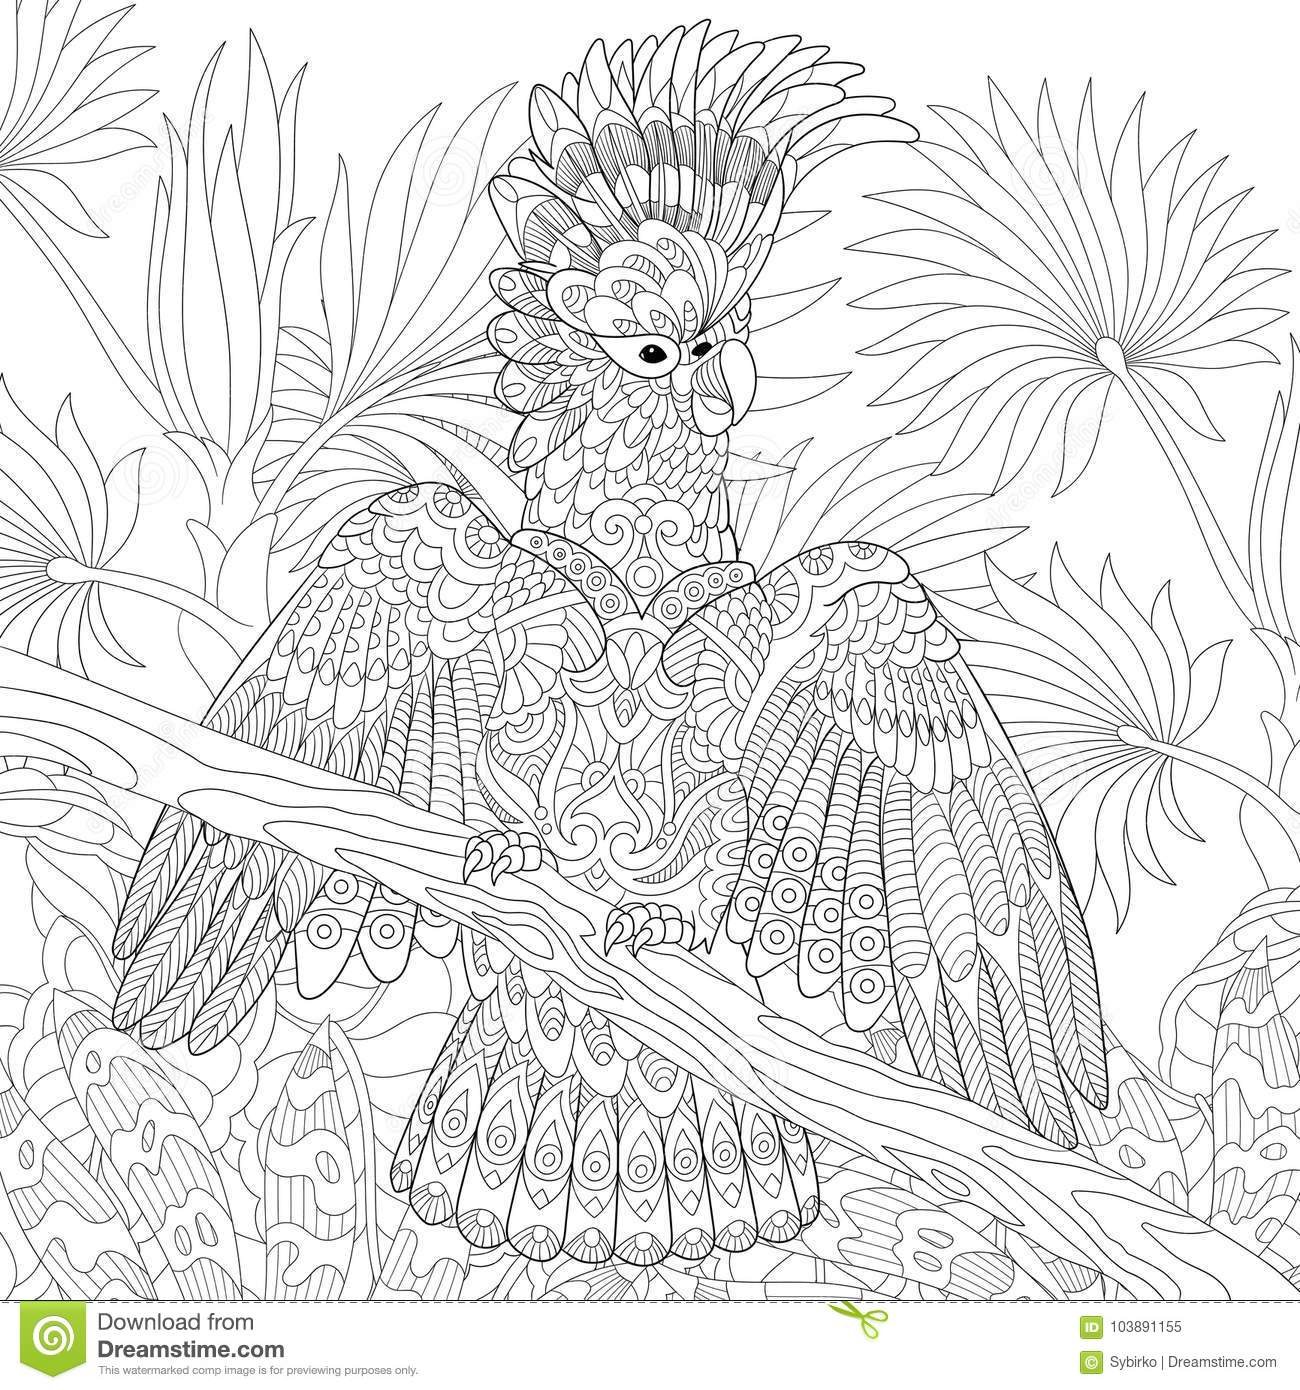 Australian Santa Coloring Page With Cockatoo Parrot In Tropical Jungle Forest Stock Vector